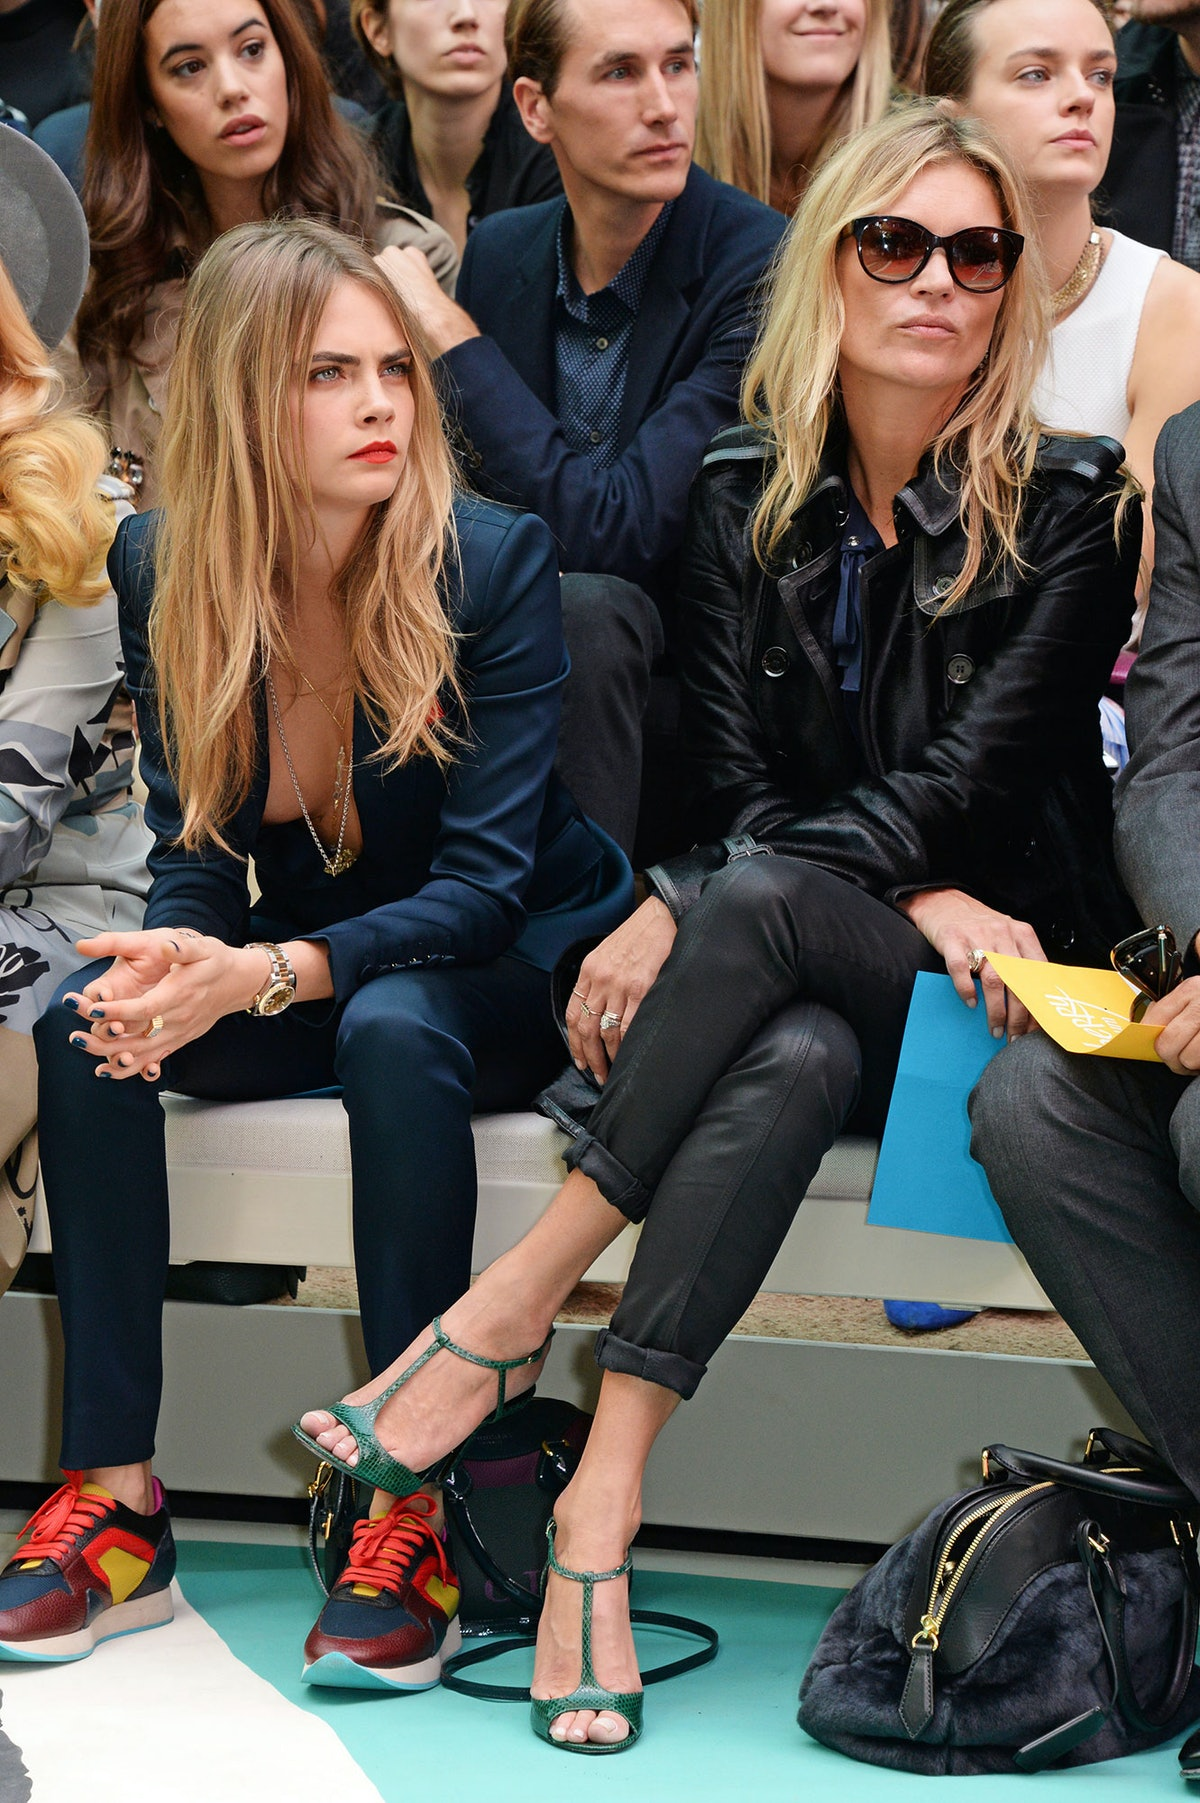 A Dynamic Duo - Cara Delevingne and Kate Moss